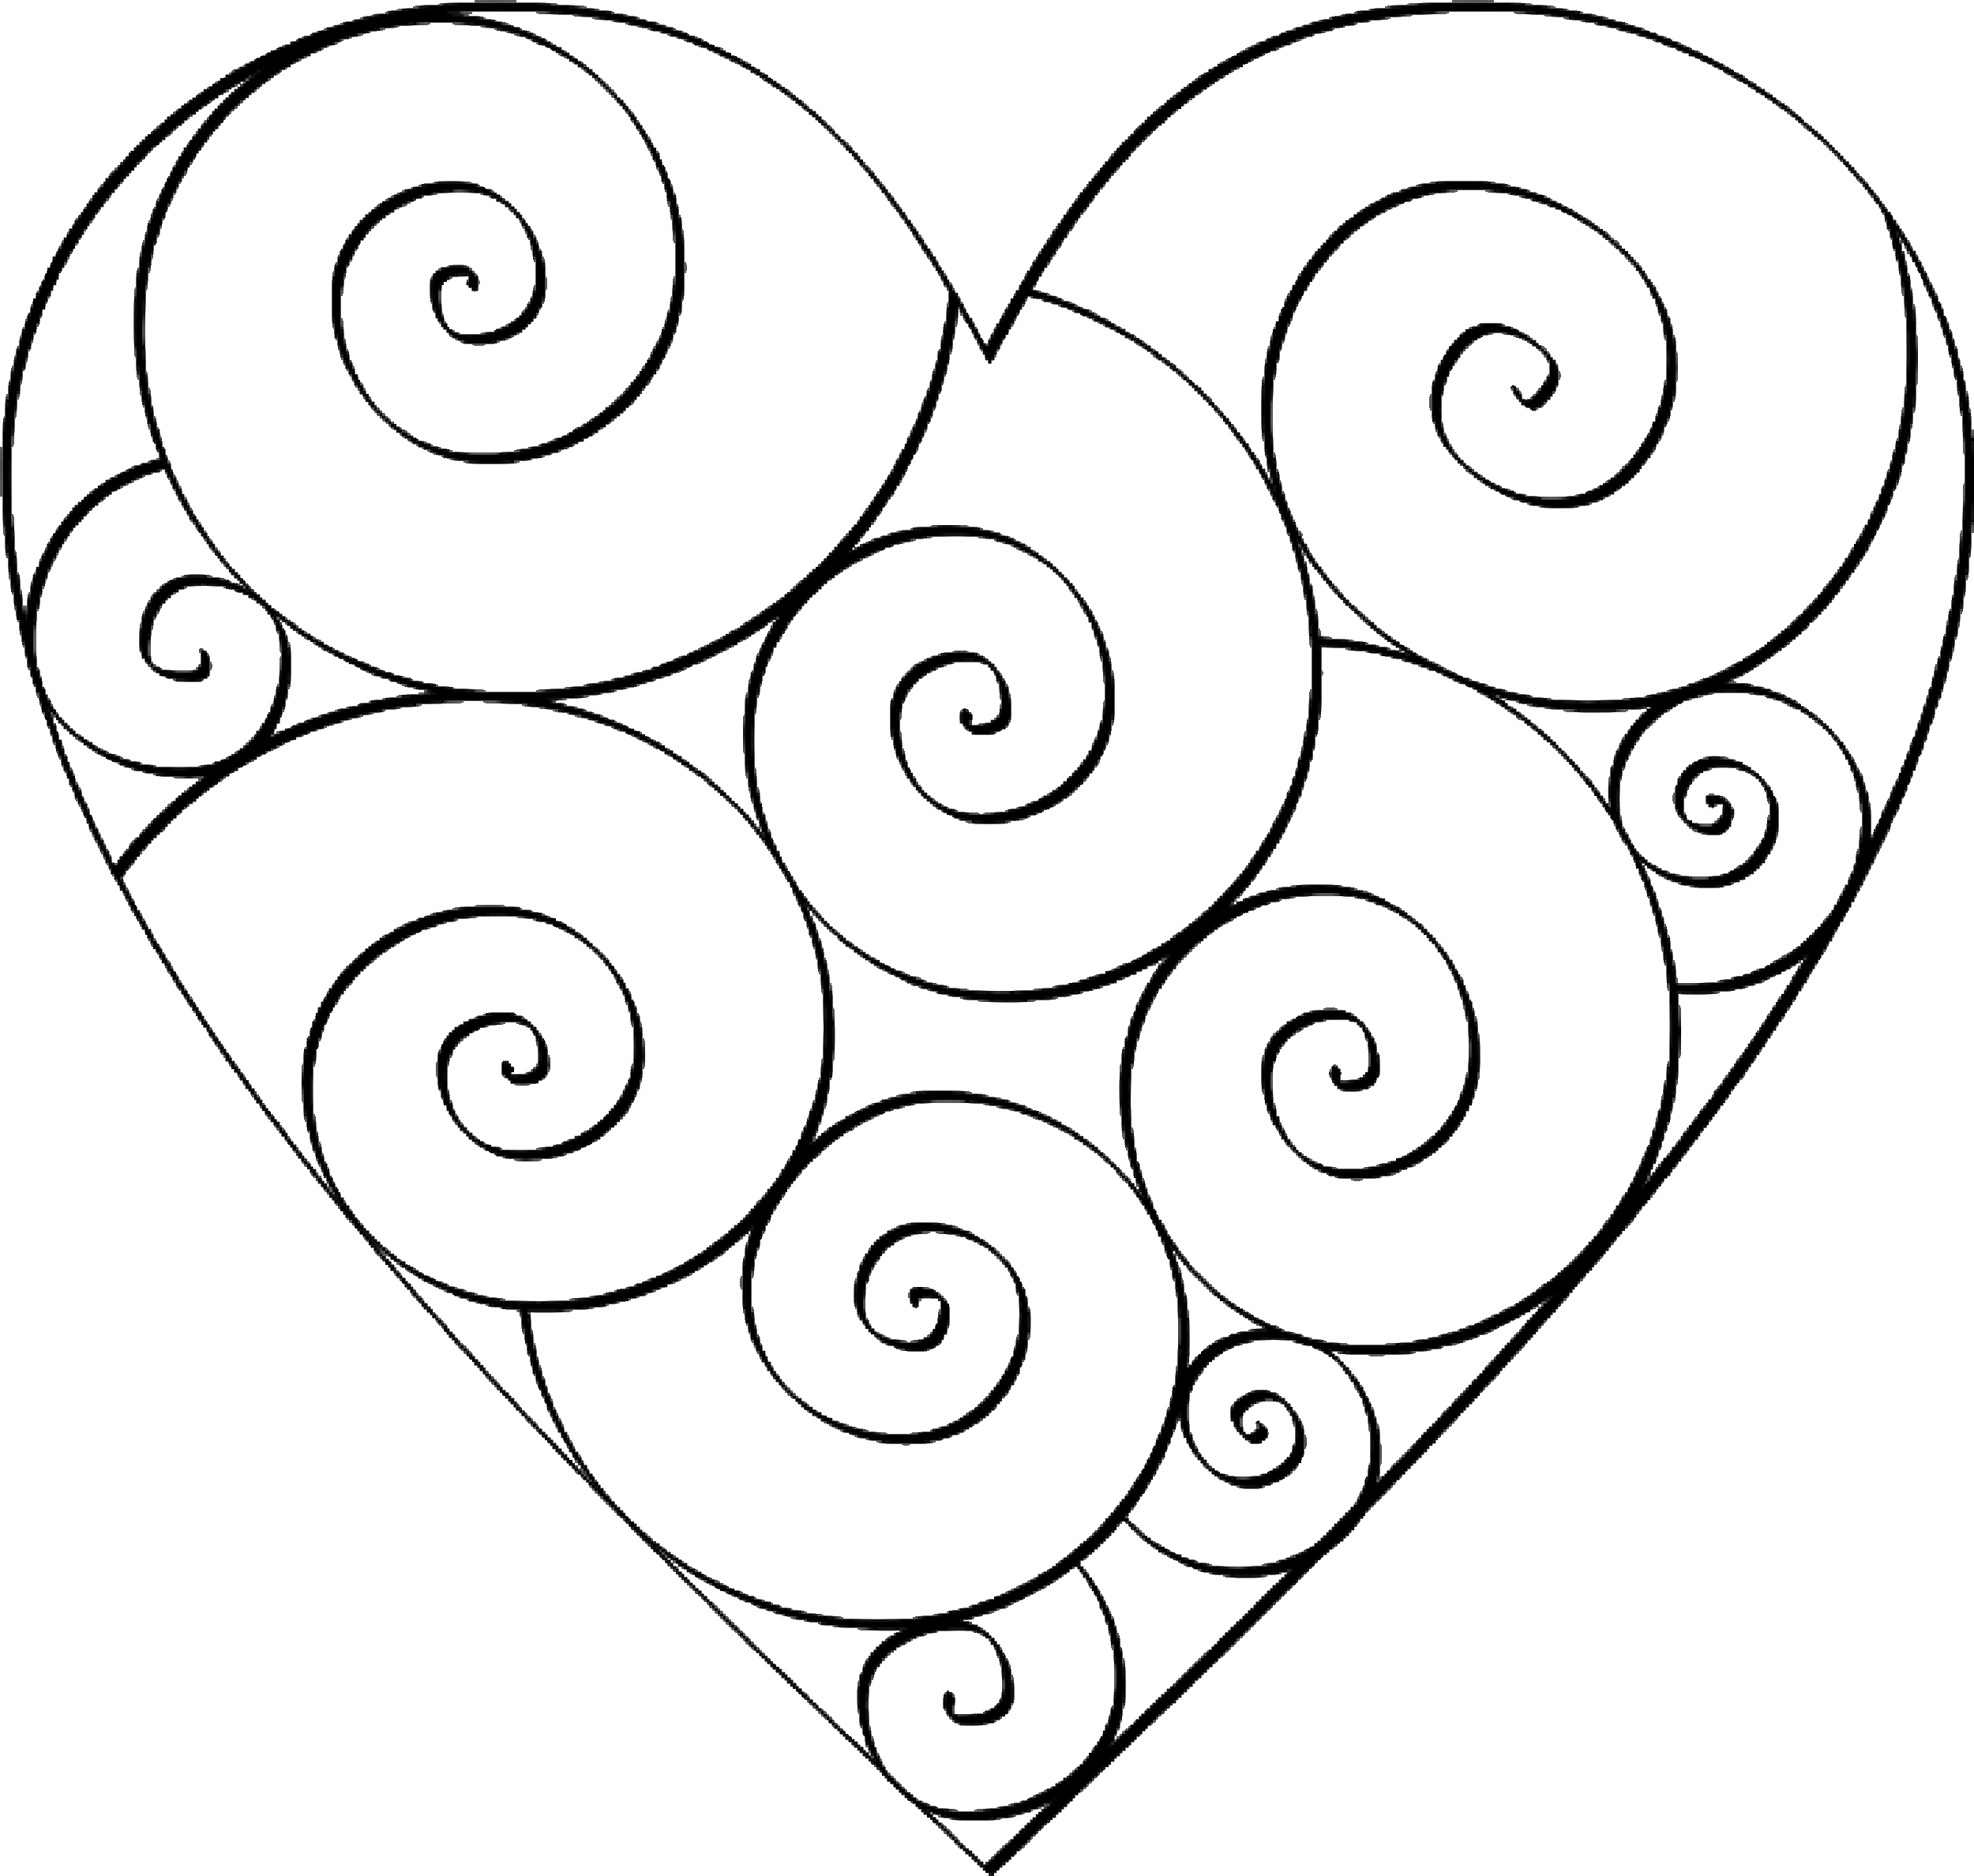 printable hearts coloring pages free printable heart coloring pages for kids cool2bkids hearts printable pages coloring